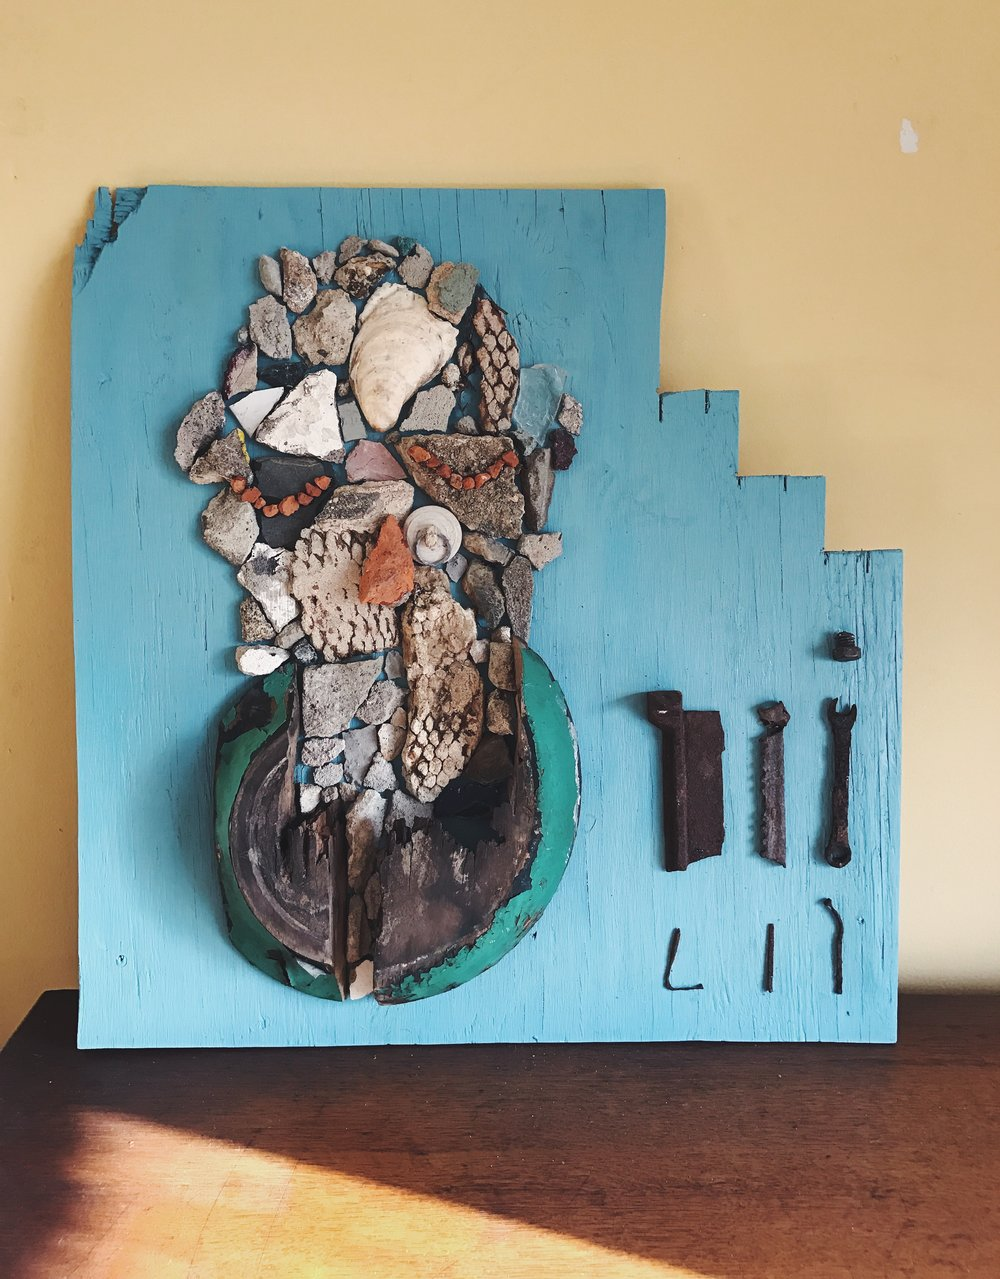 Found objects on wood: depicts the institutional negligence and gentrification experienced by the long-time residents of west Philadelphia's Mantua neighborhood in 2016; made of objects and debris found on the streets of Mantua.